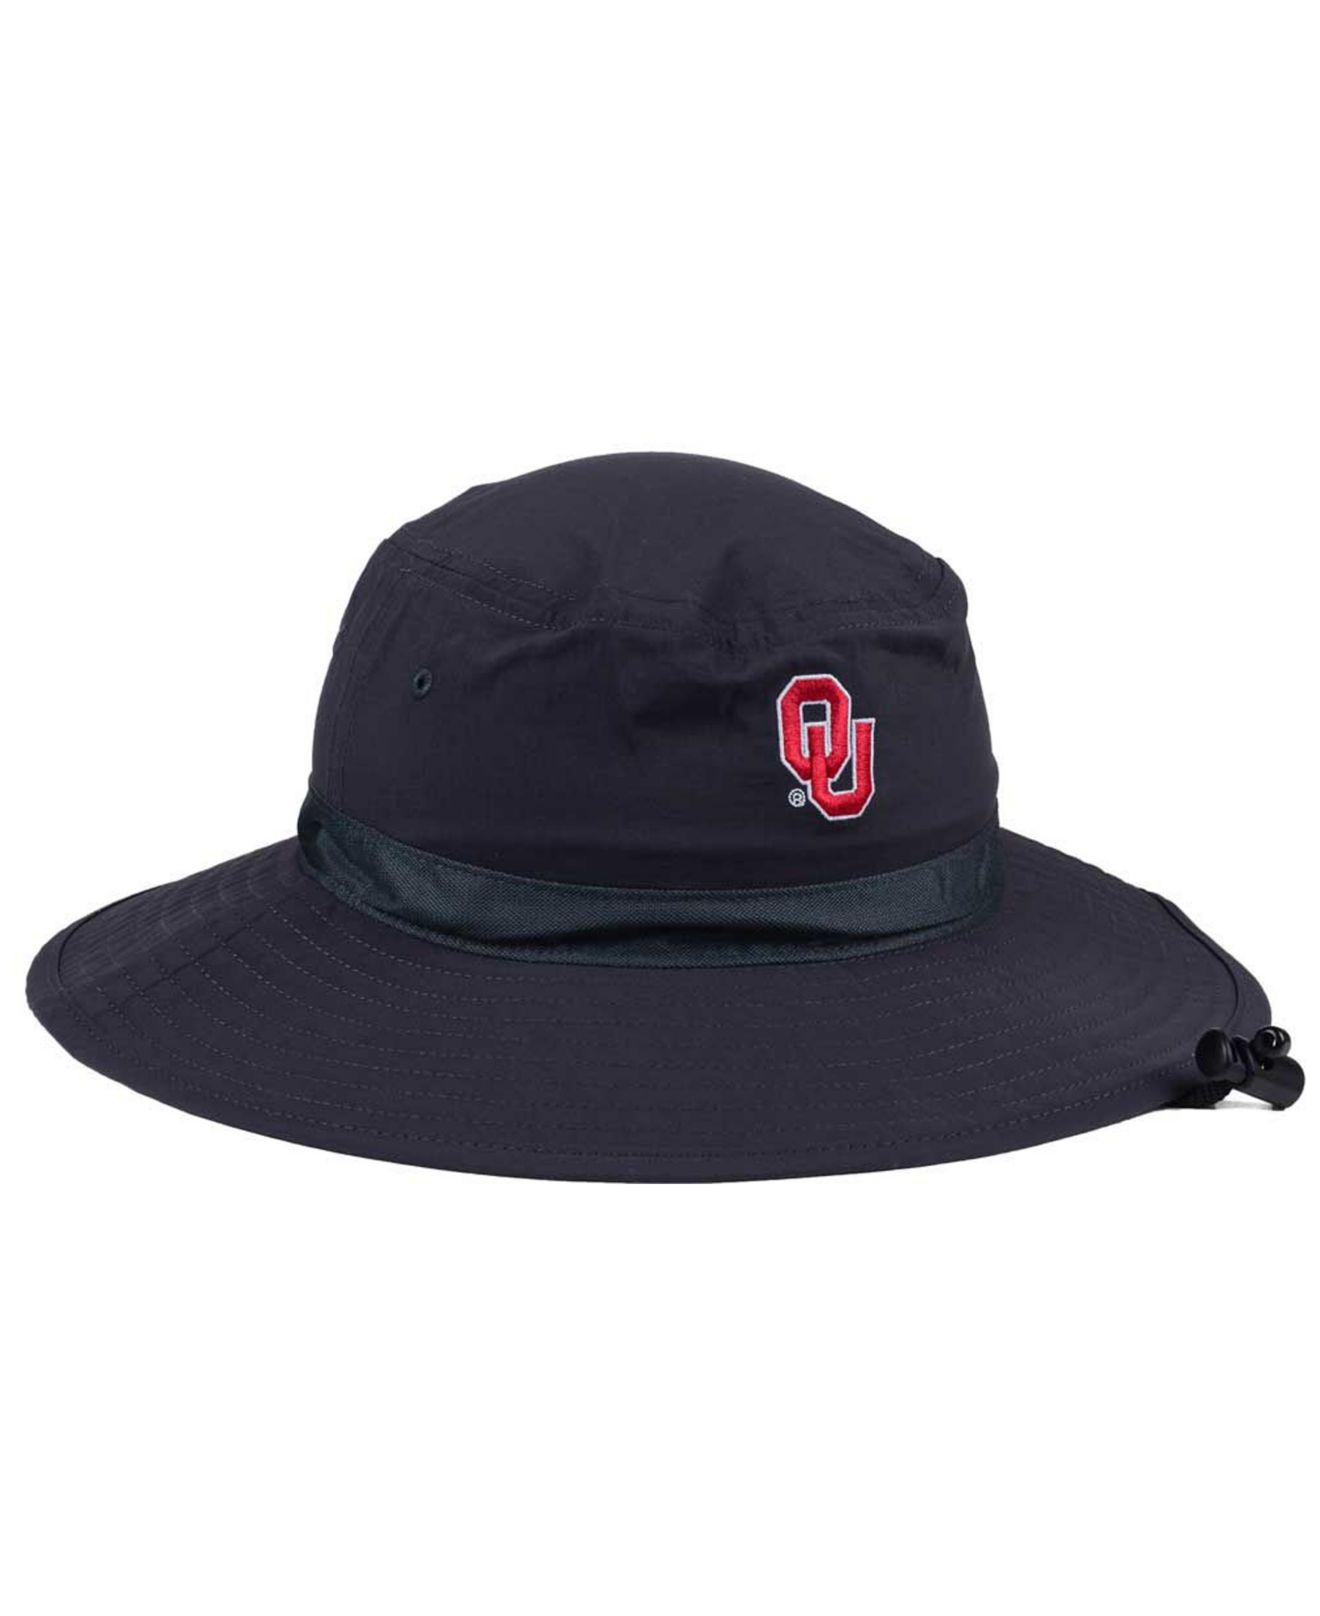 af259a39db5 Lyst - Nike Oklahoma Sooners Sideline Bucket Hat in Blue for Men